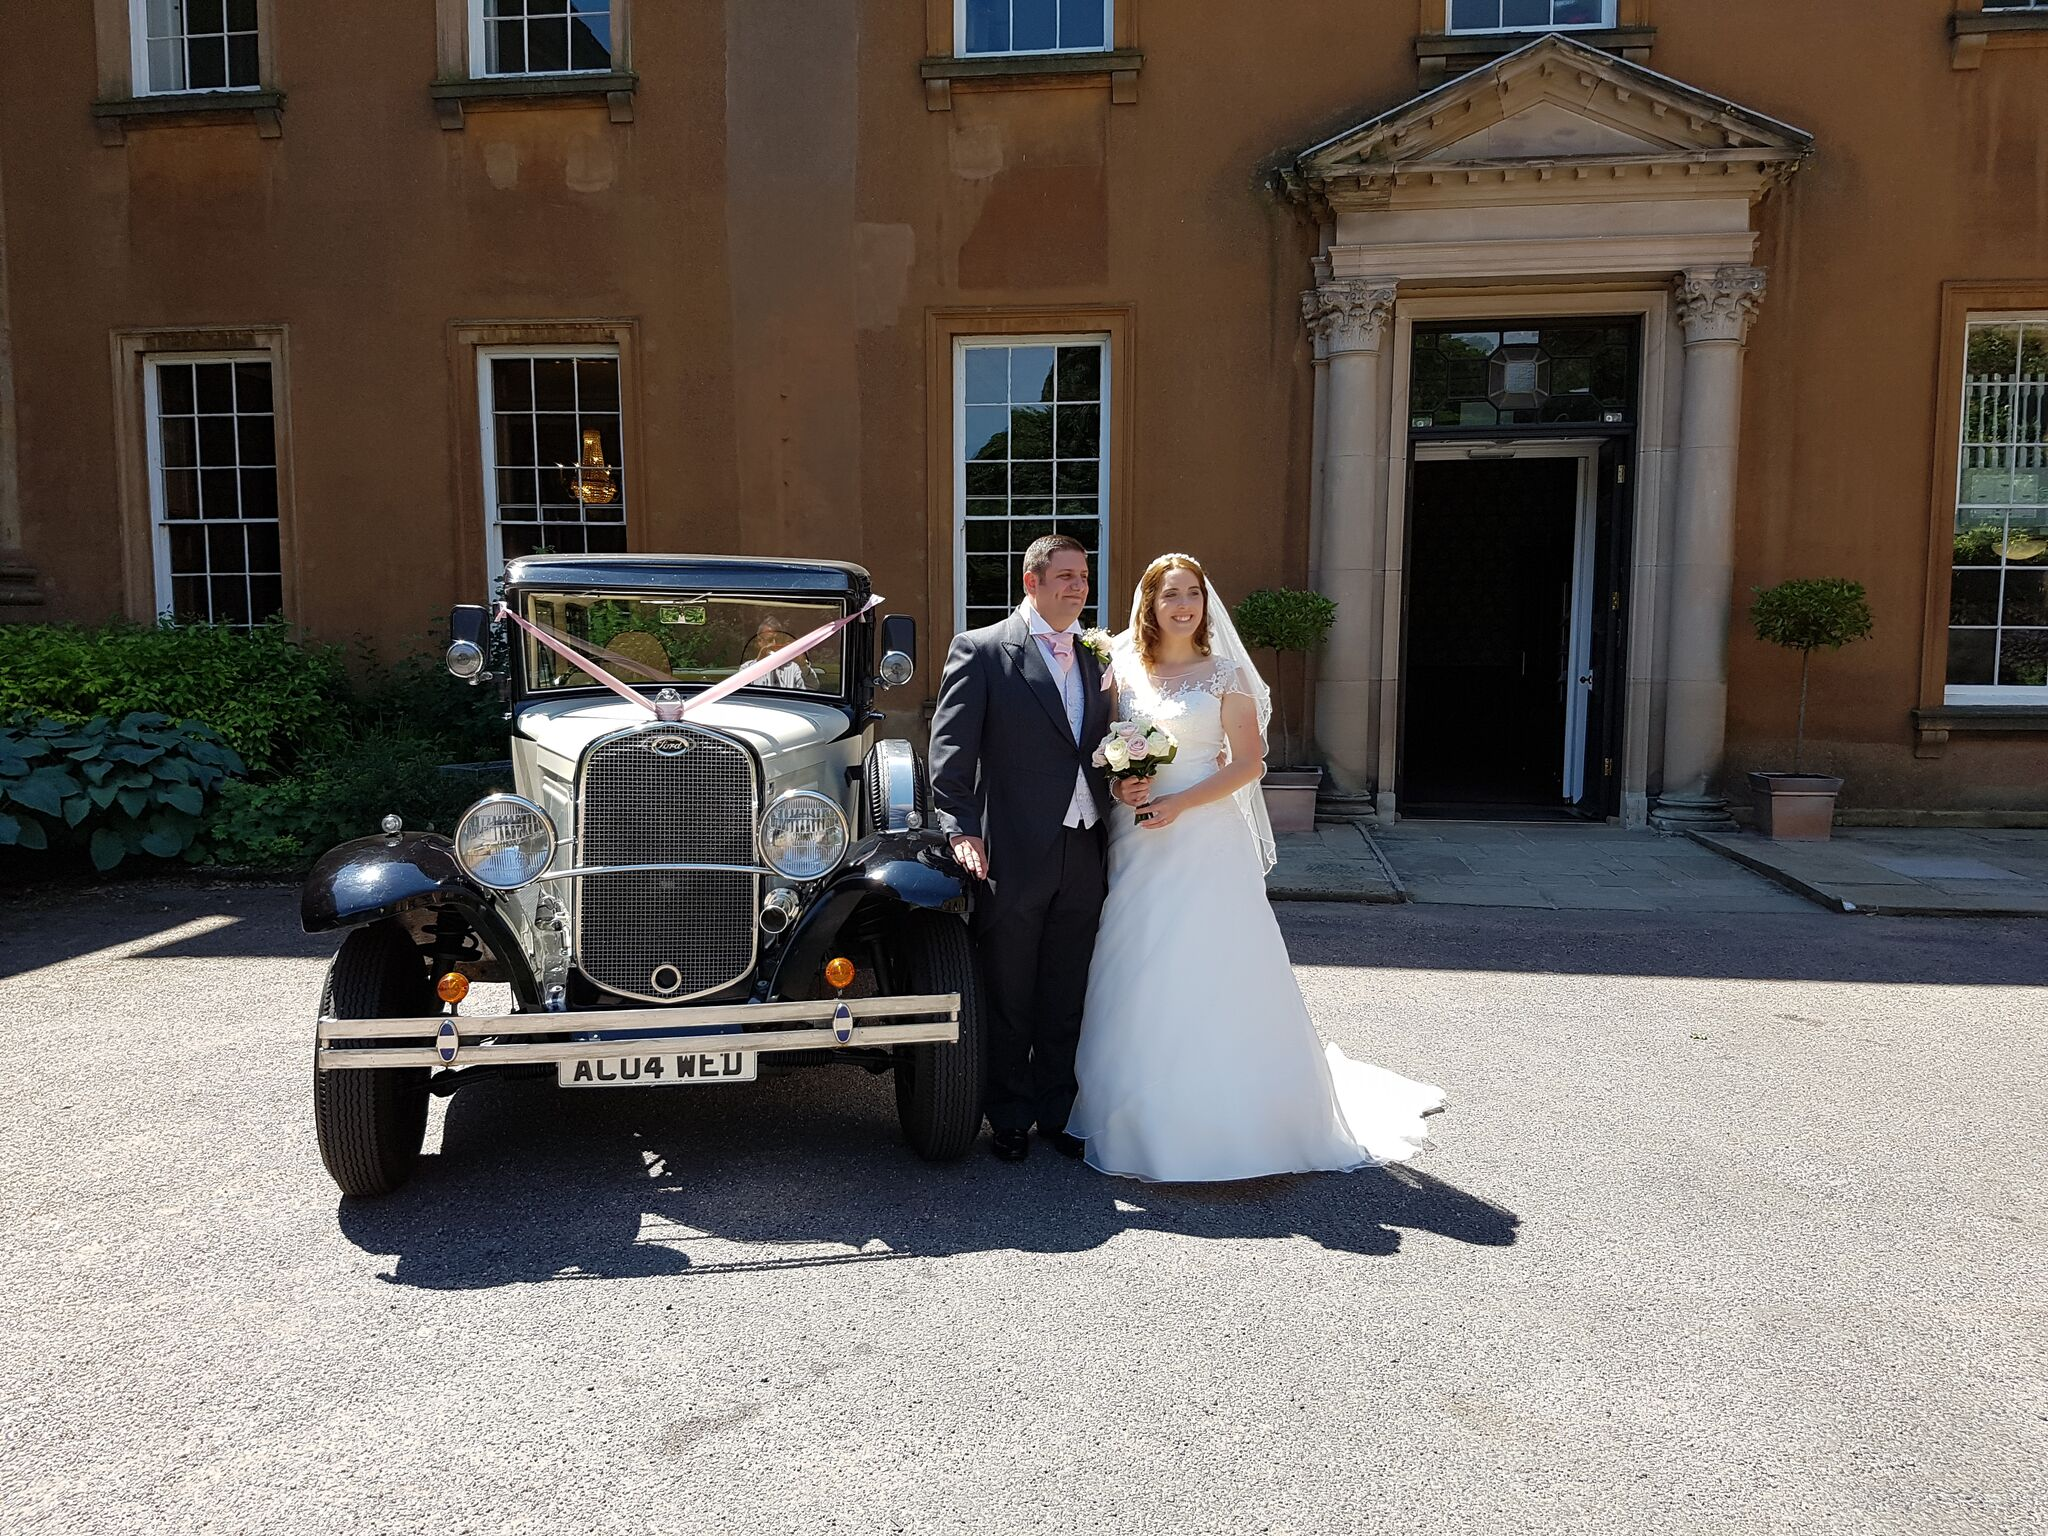 Top wedding transport in shropshire